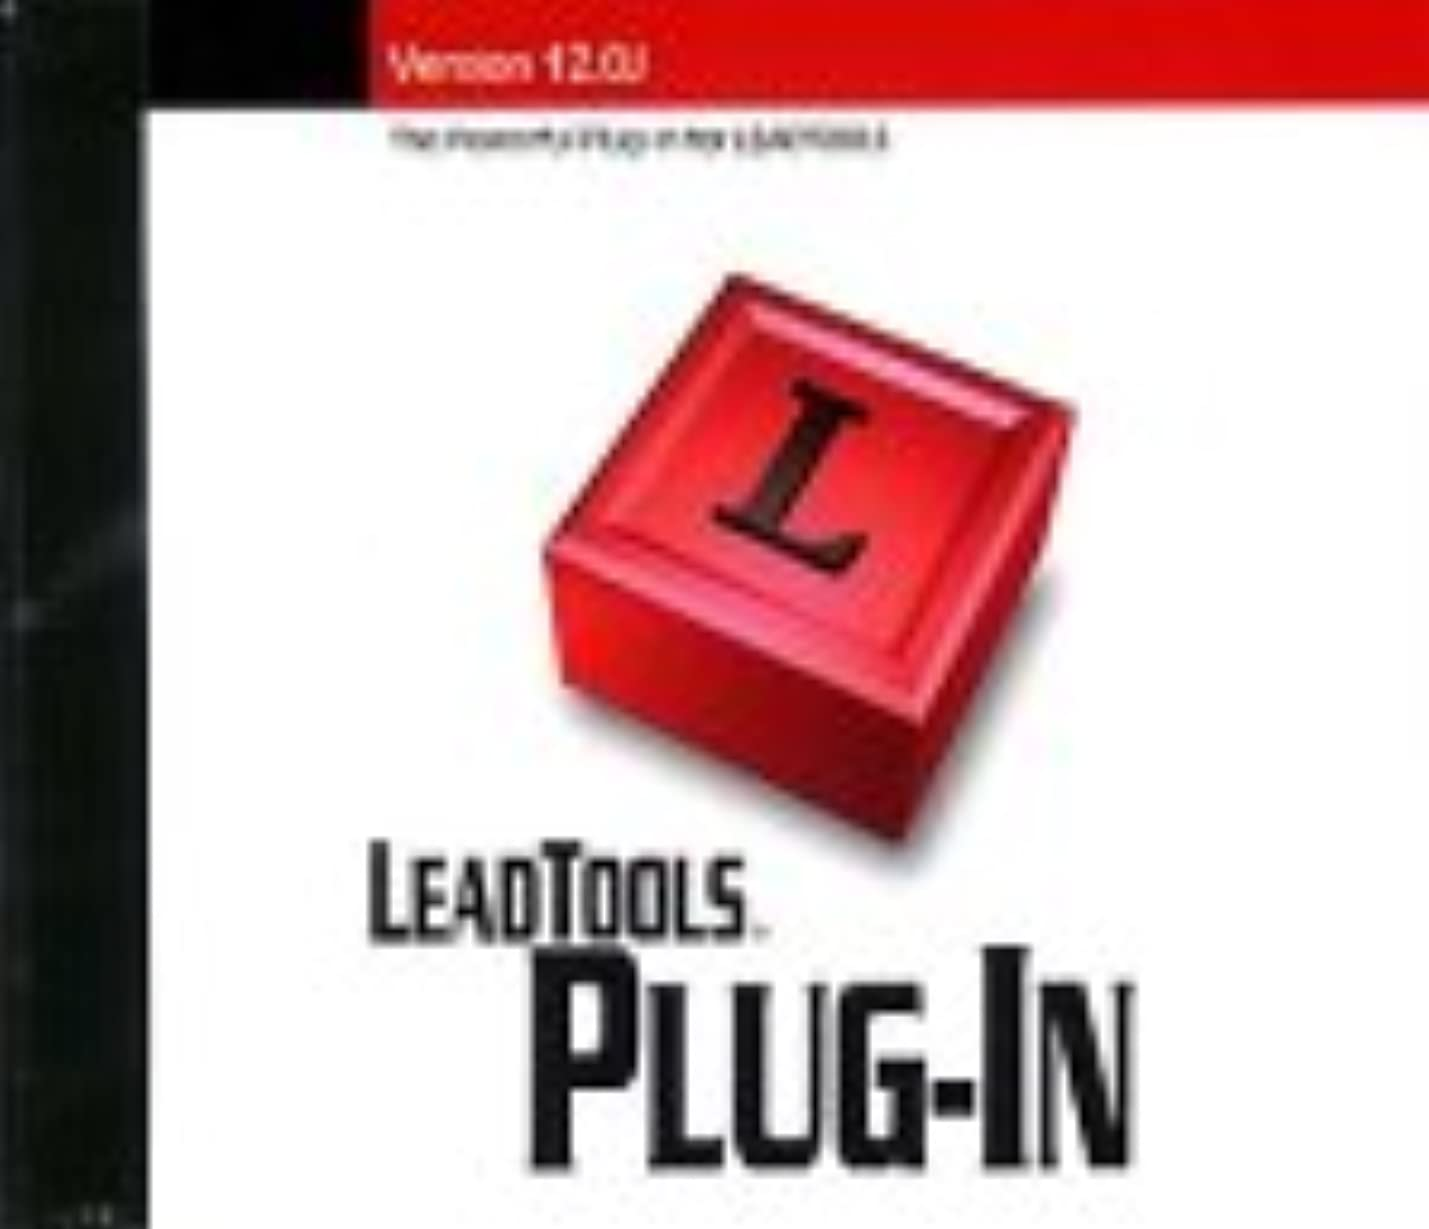 予約密輸考えPowerToolsシリーズ LeadTools PDF Plug-In(英語版)